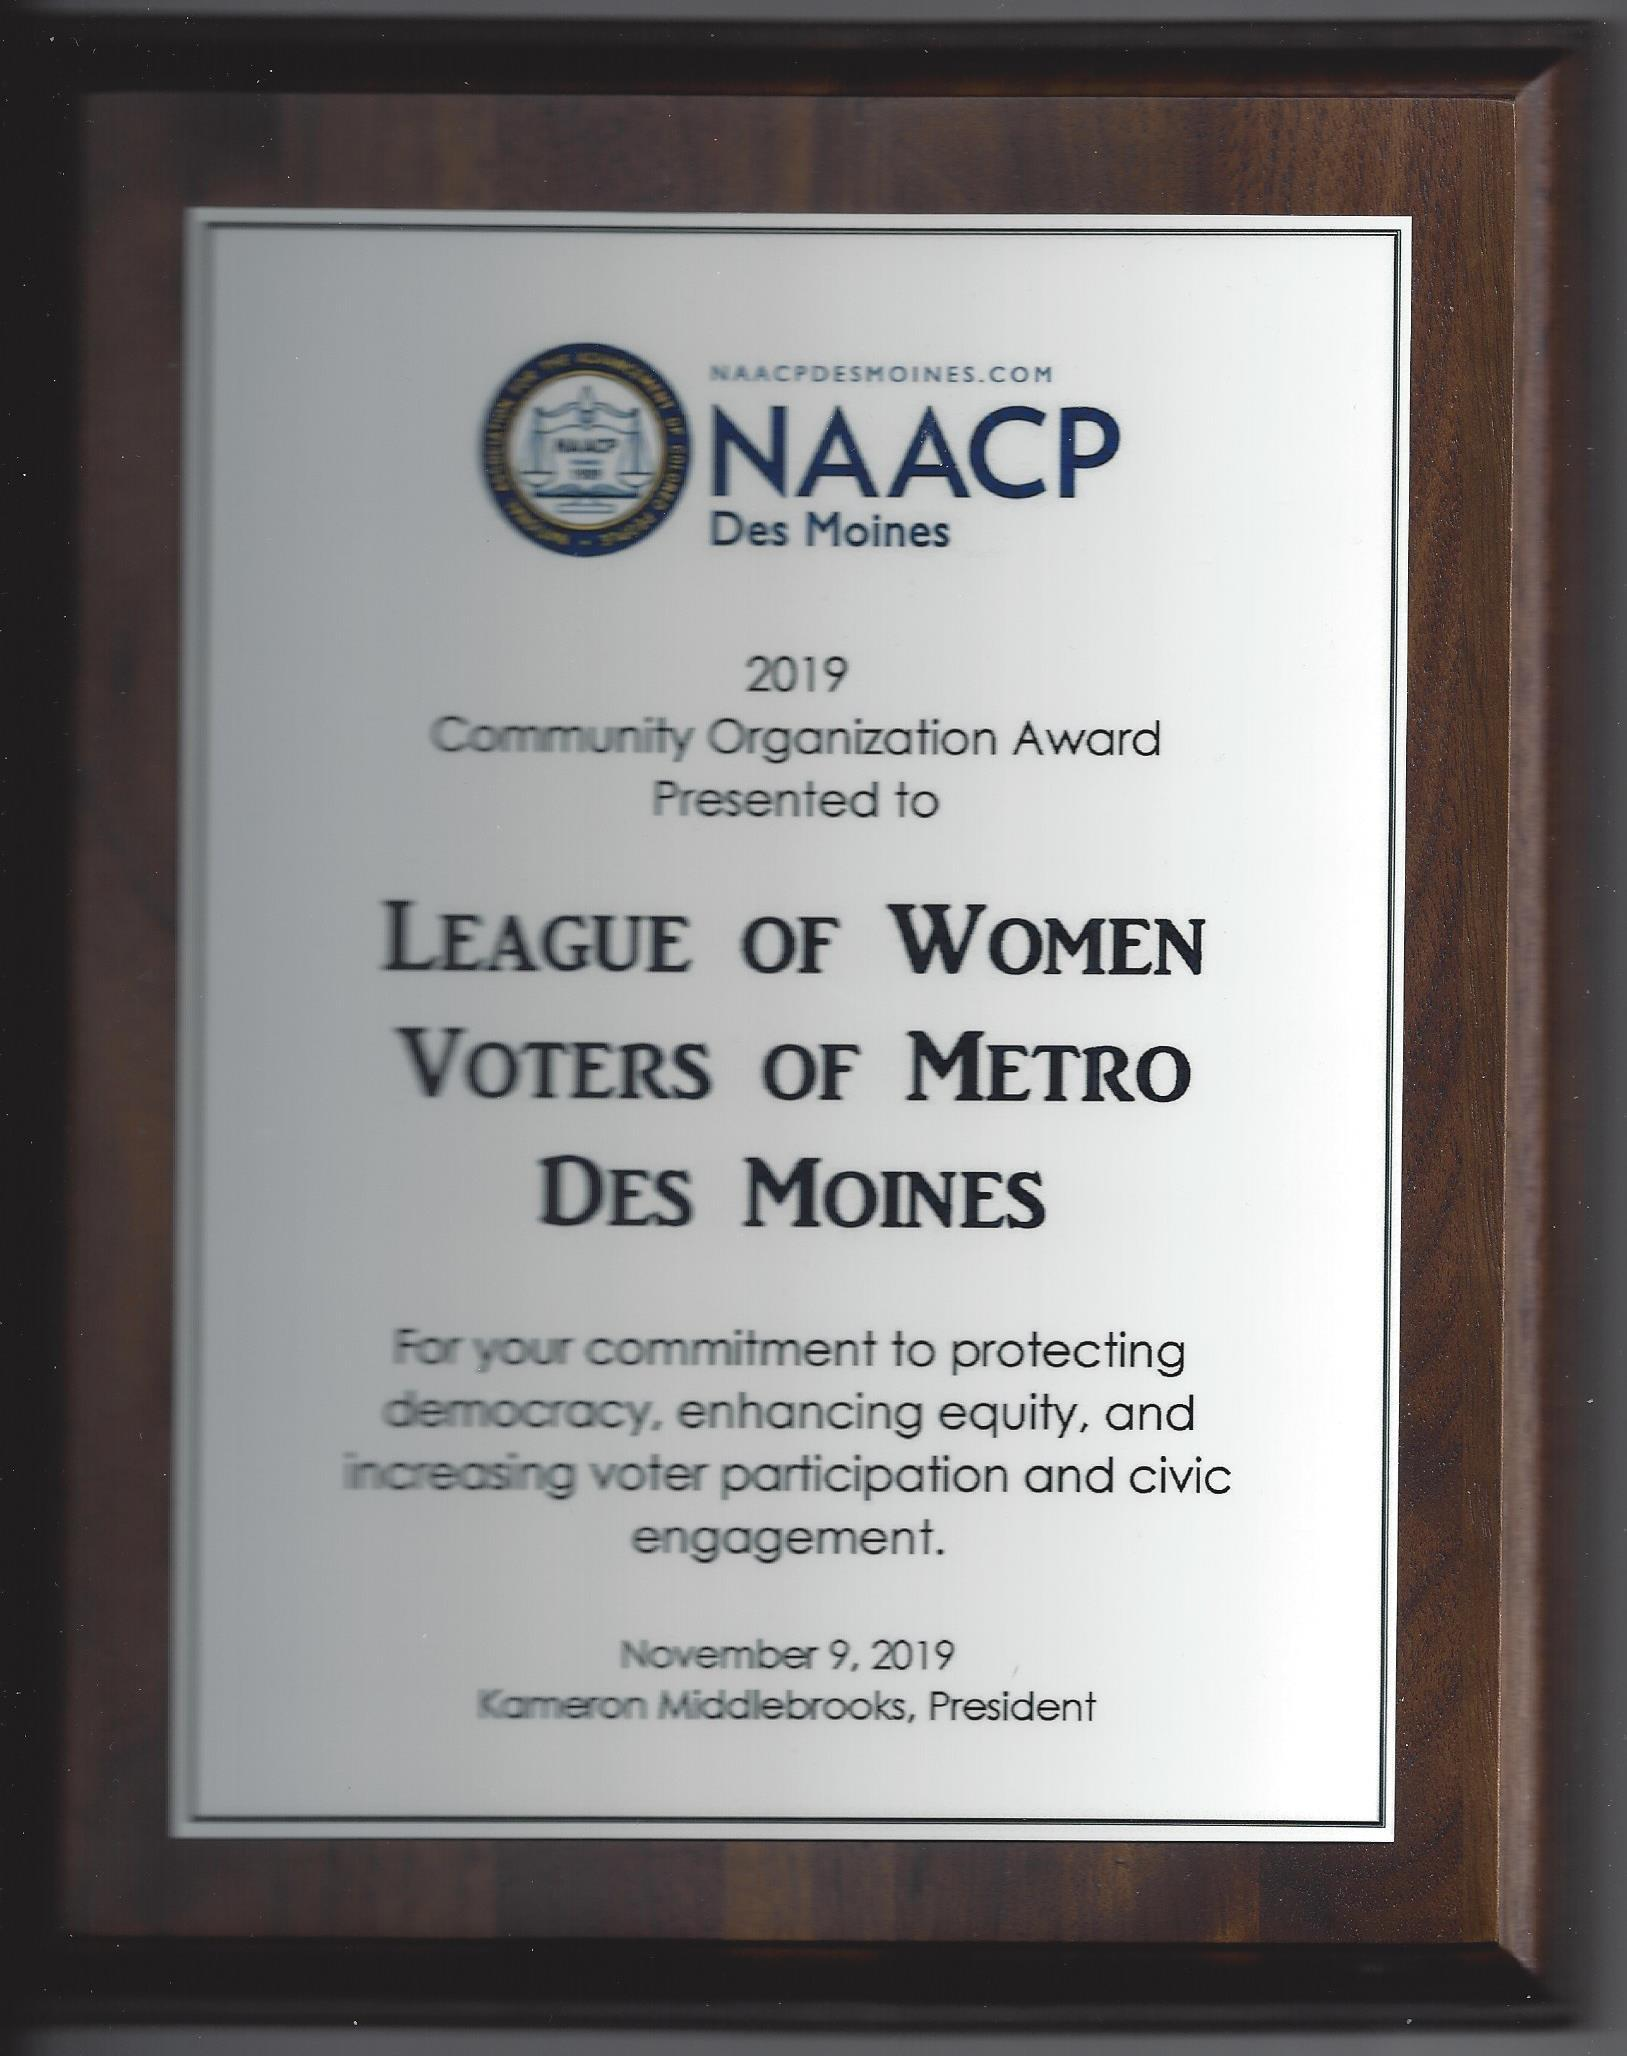 Picture of the NAACP award given to LWV Metro Des Moines